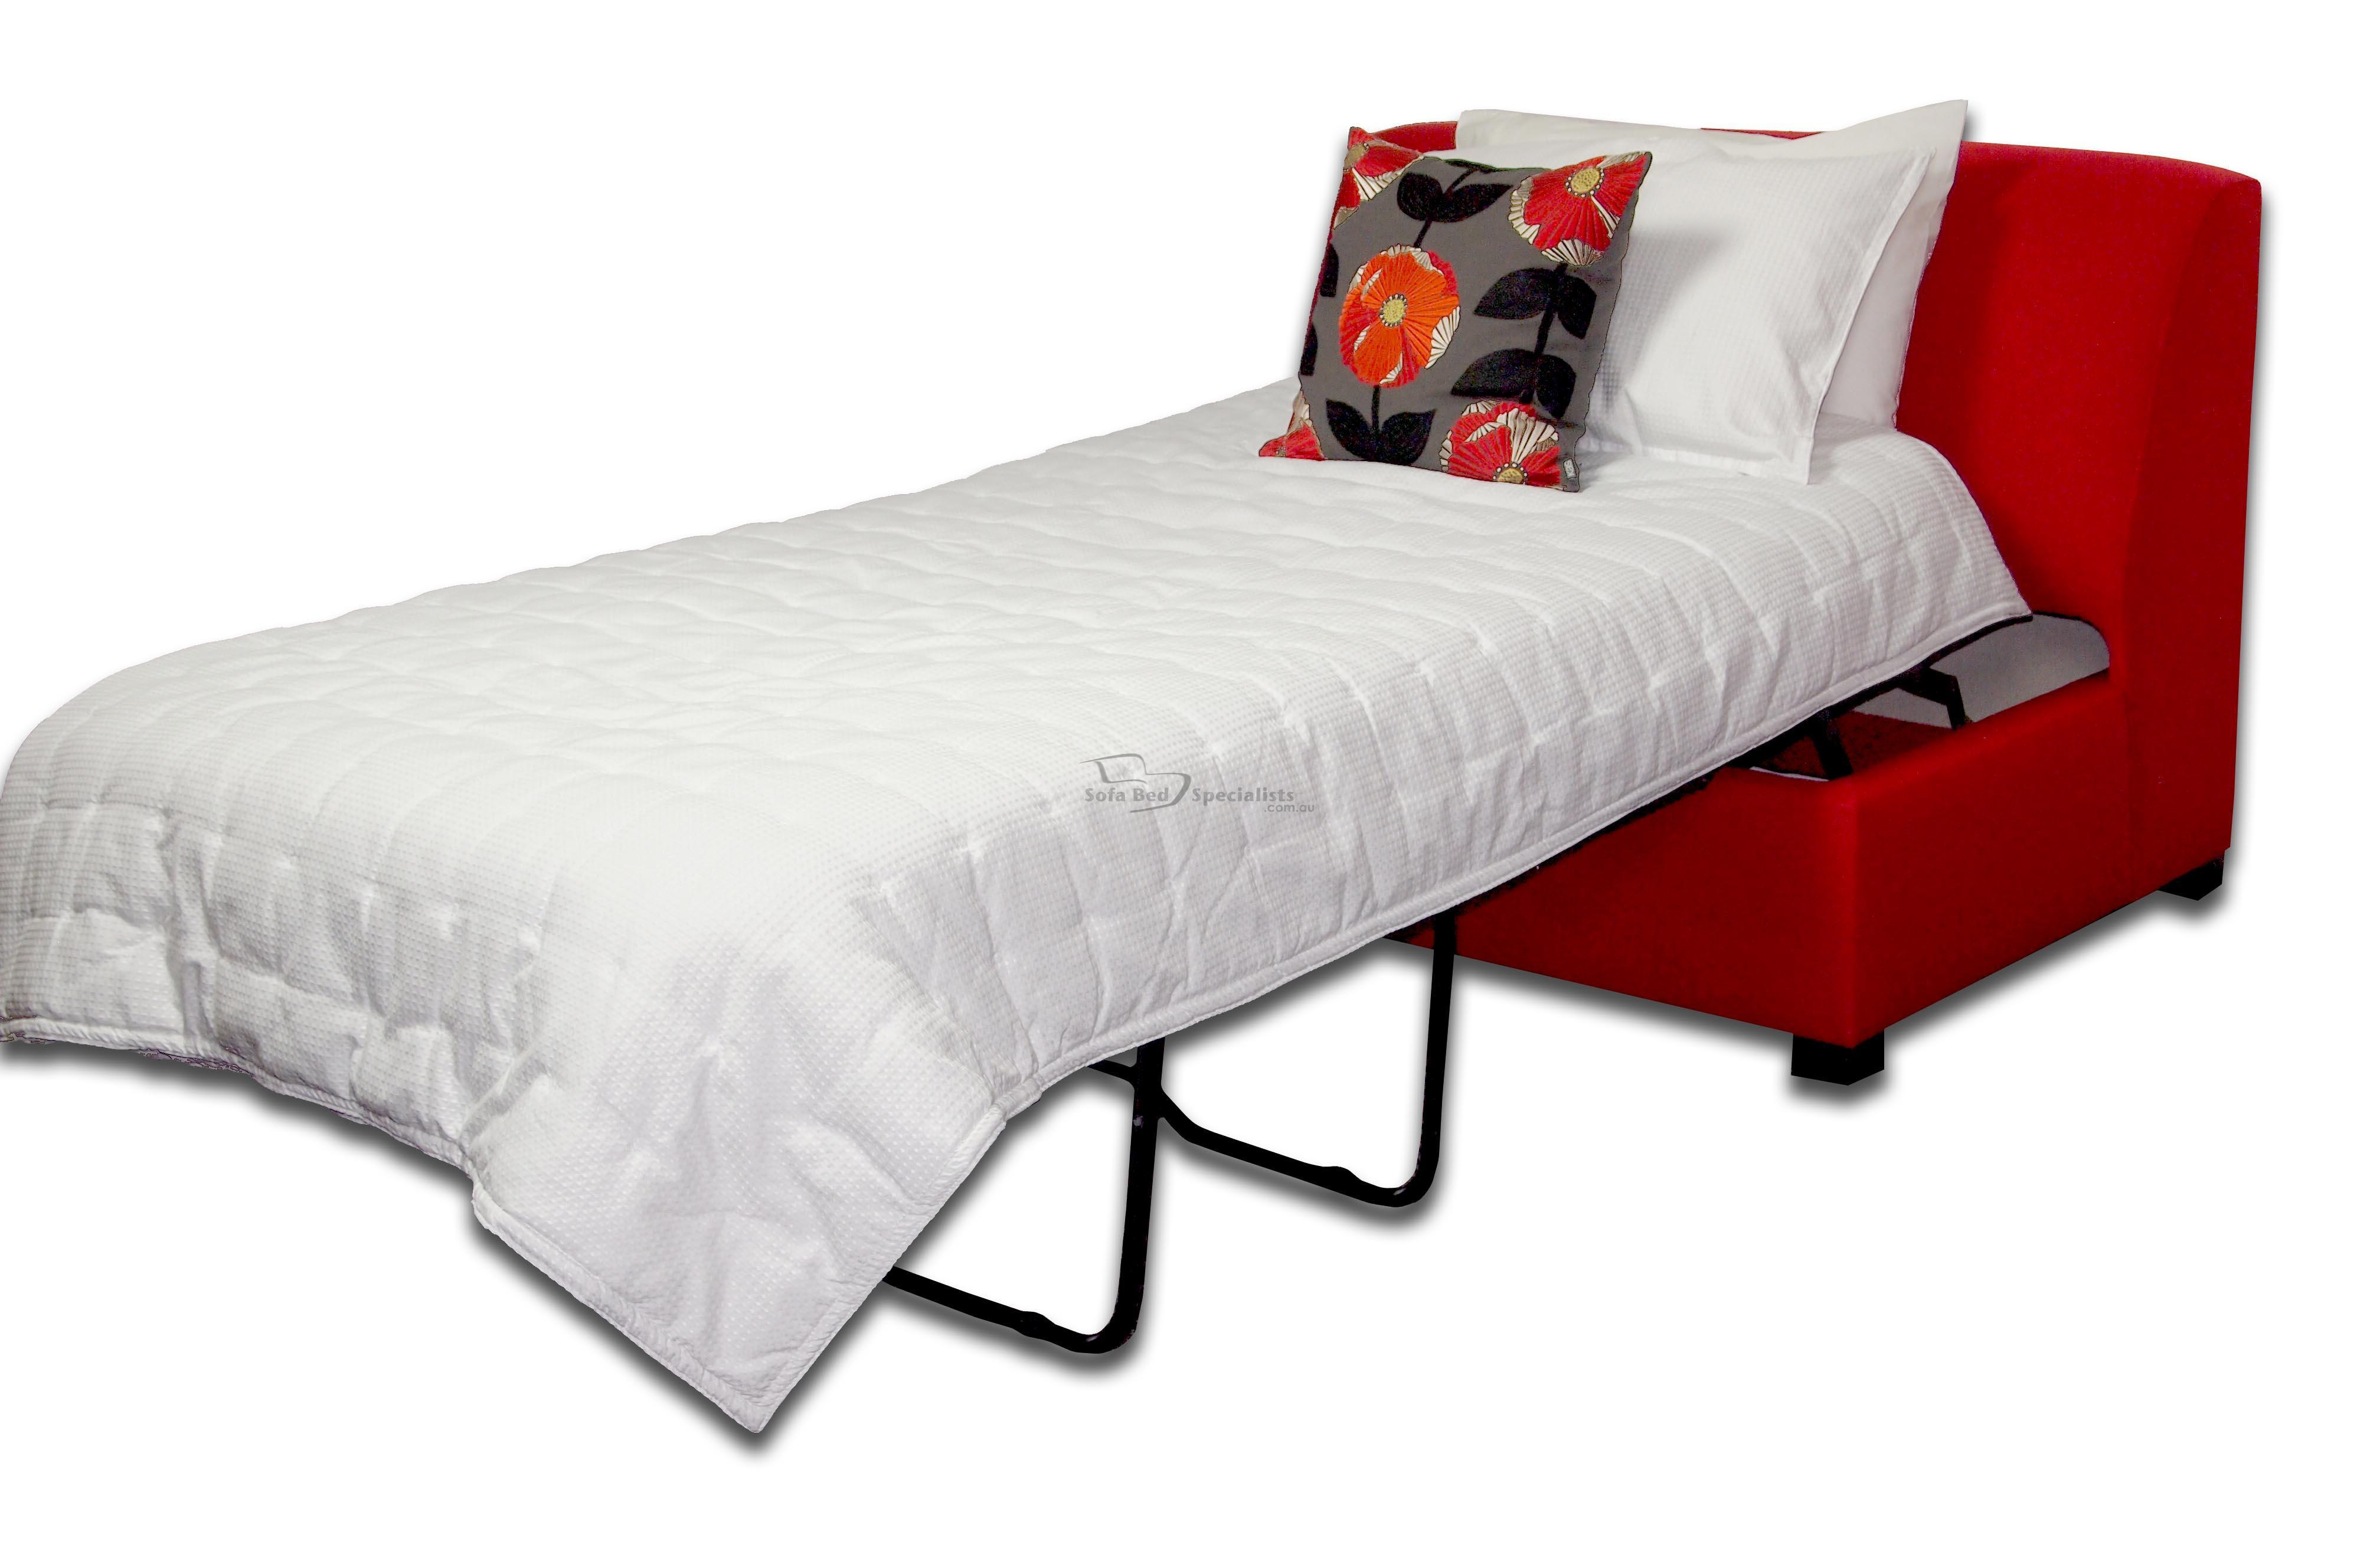 Brisbane Armless Single Sofabed Sofa Bed Specialists